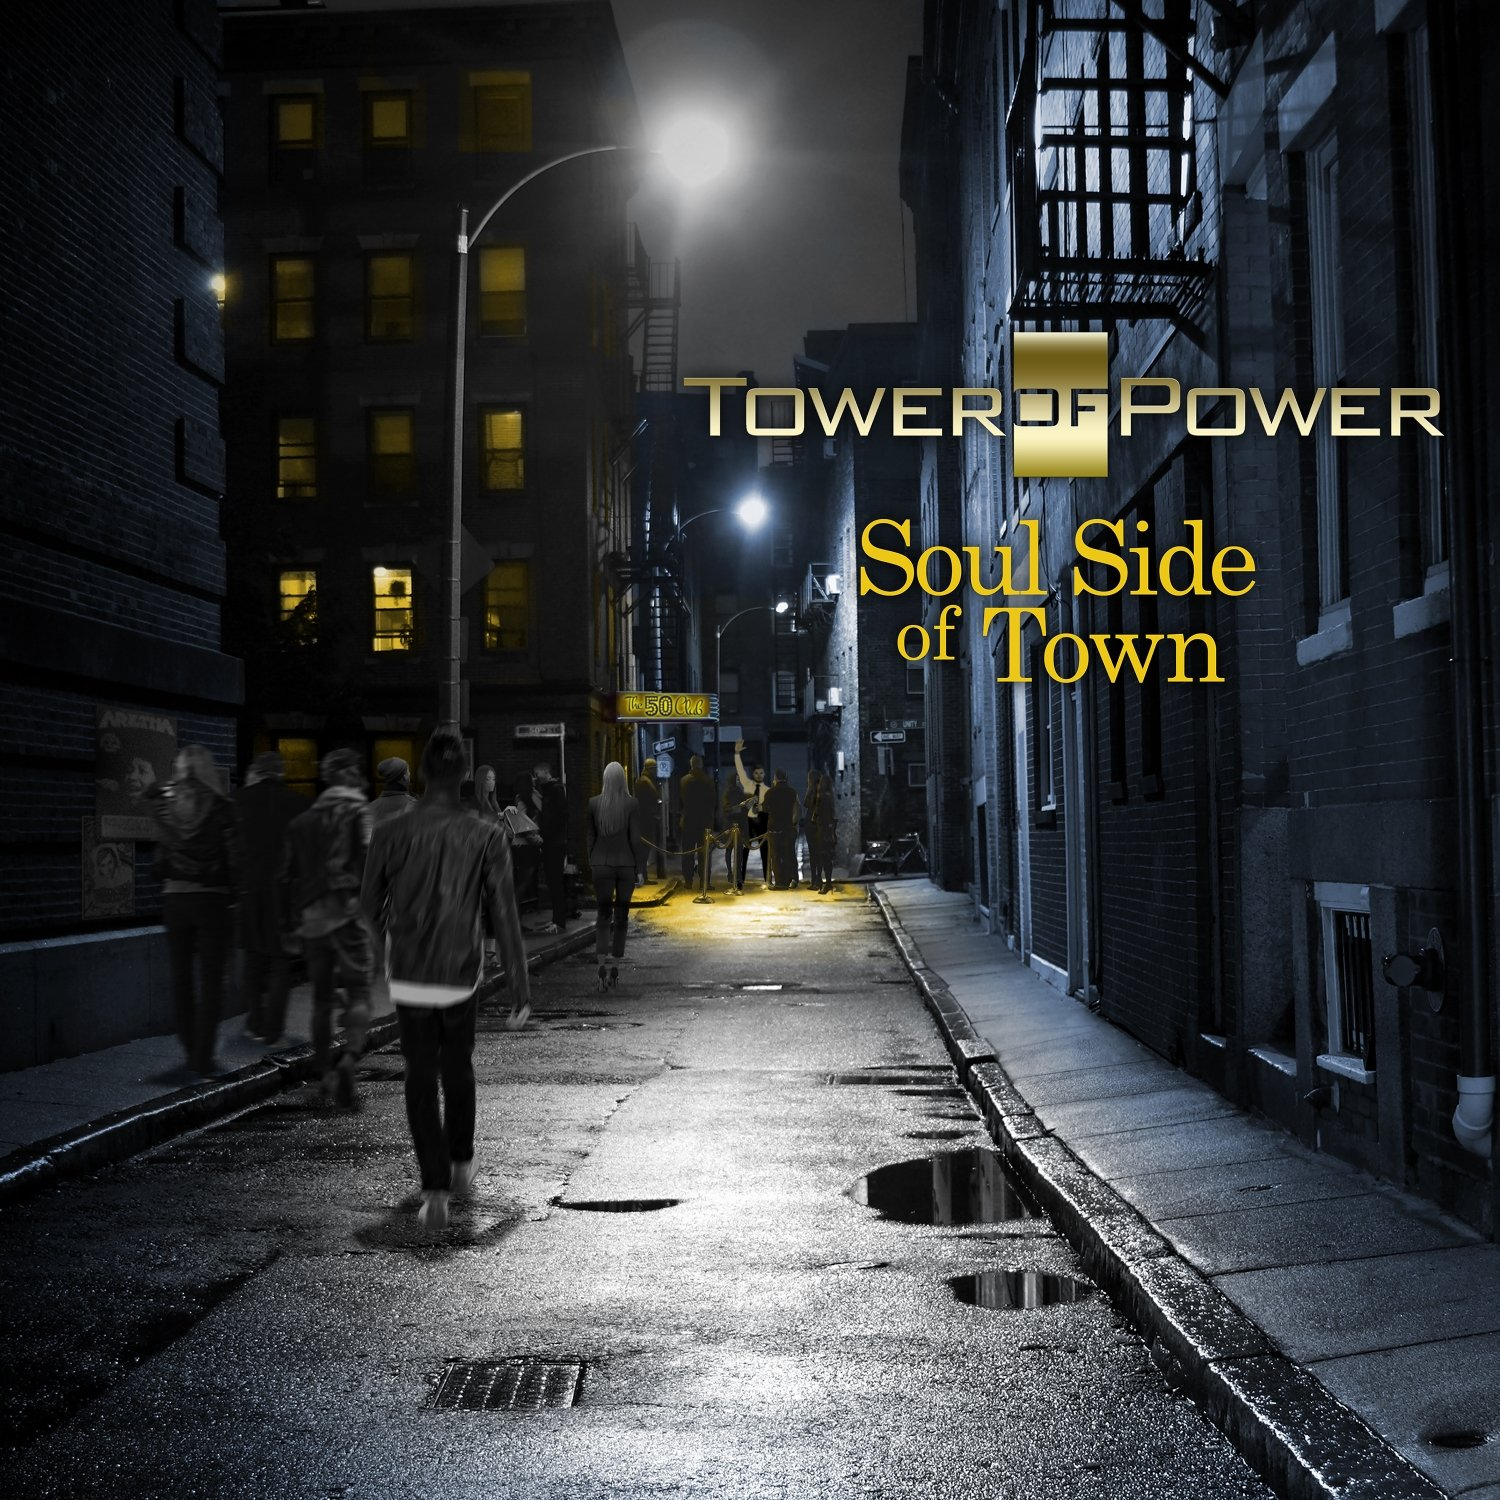 Tower of Power: Soul Side of Town by ARJY9